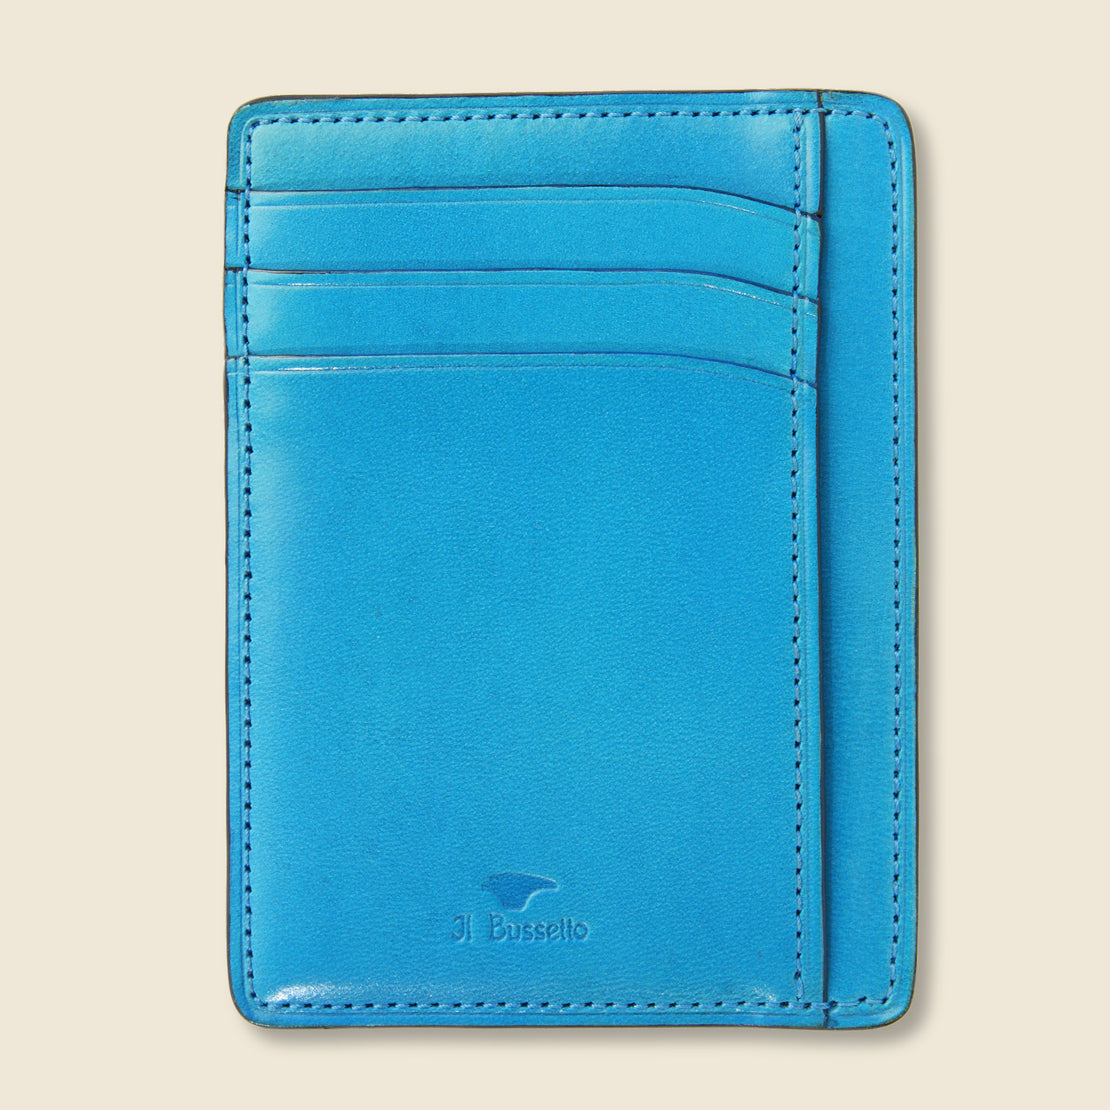 Il Bussetto Card and Document Case - Cadet Blue